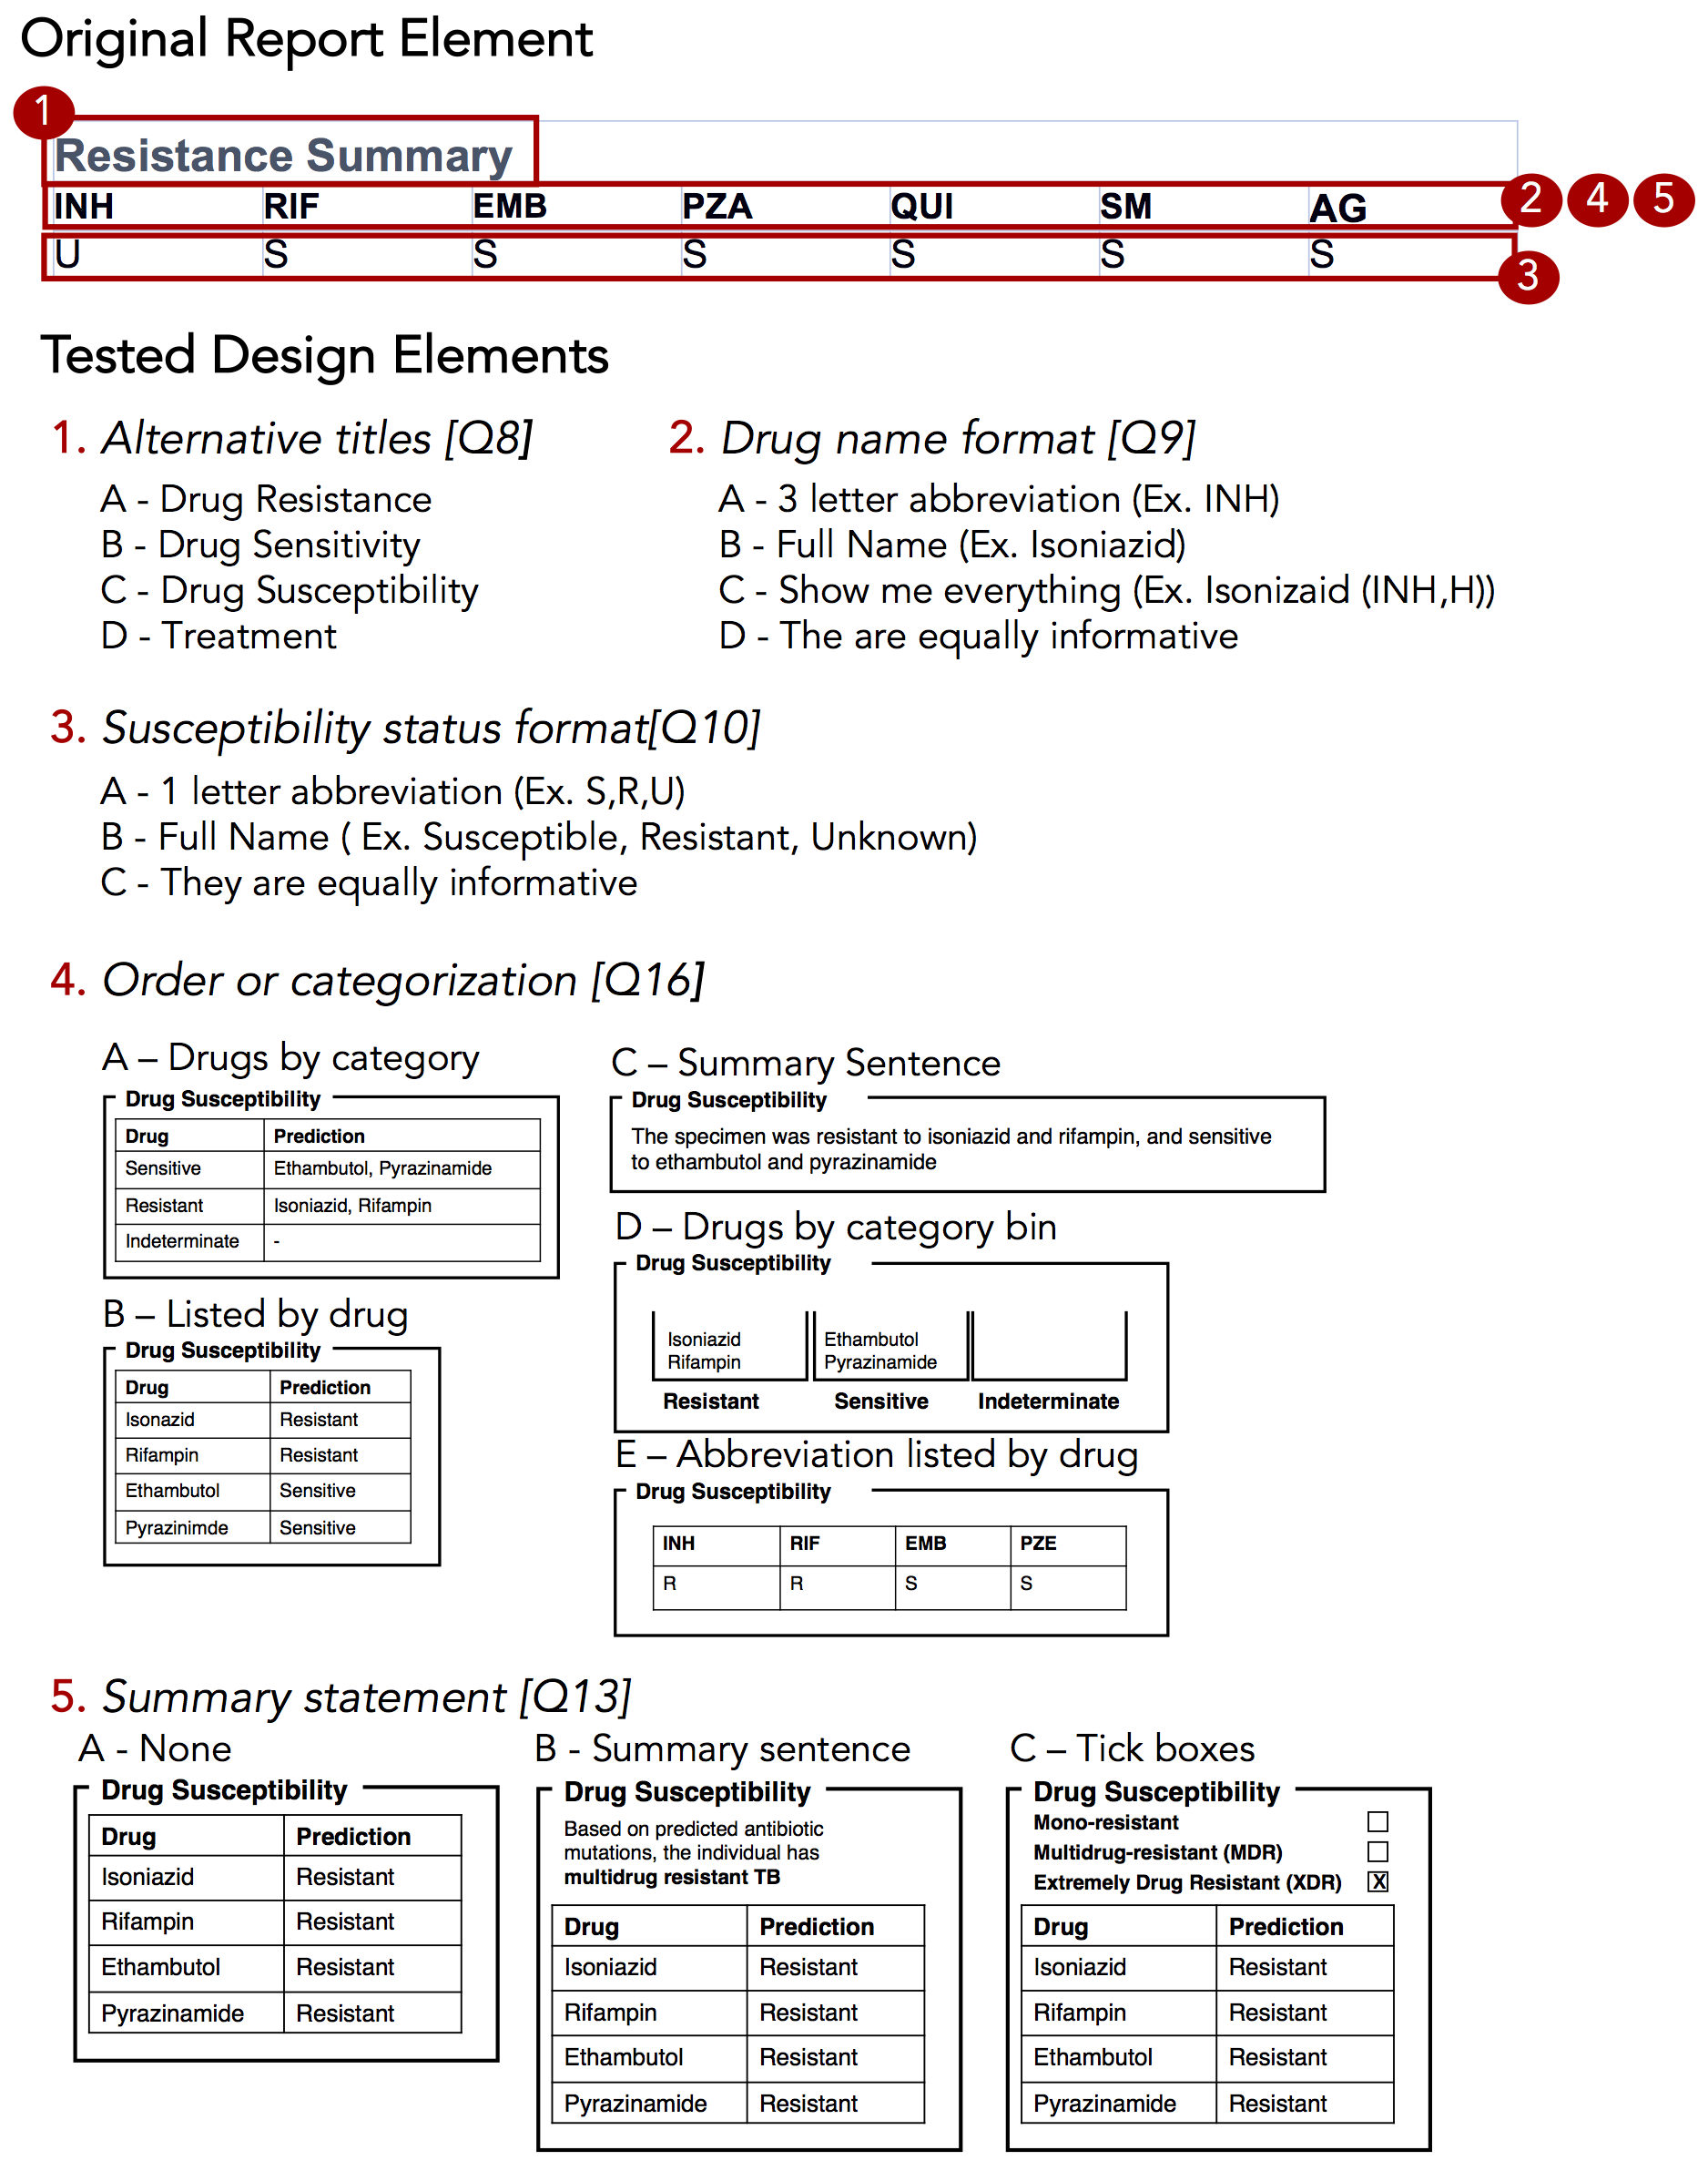 Isolated Design Elements The Original Report Element Highlighted In Red Is Broken Down Into Each Of Which Was Tested